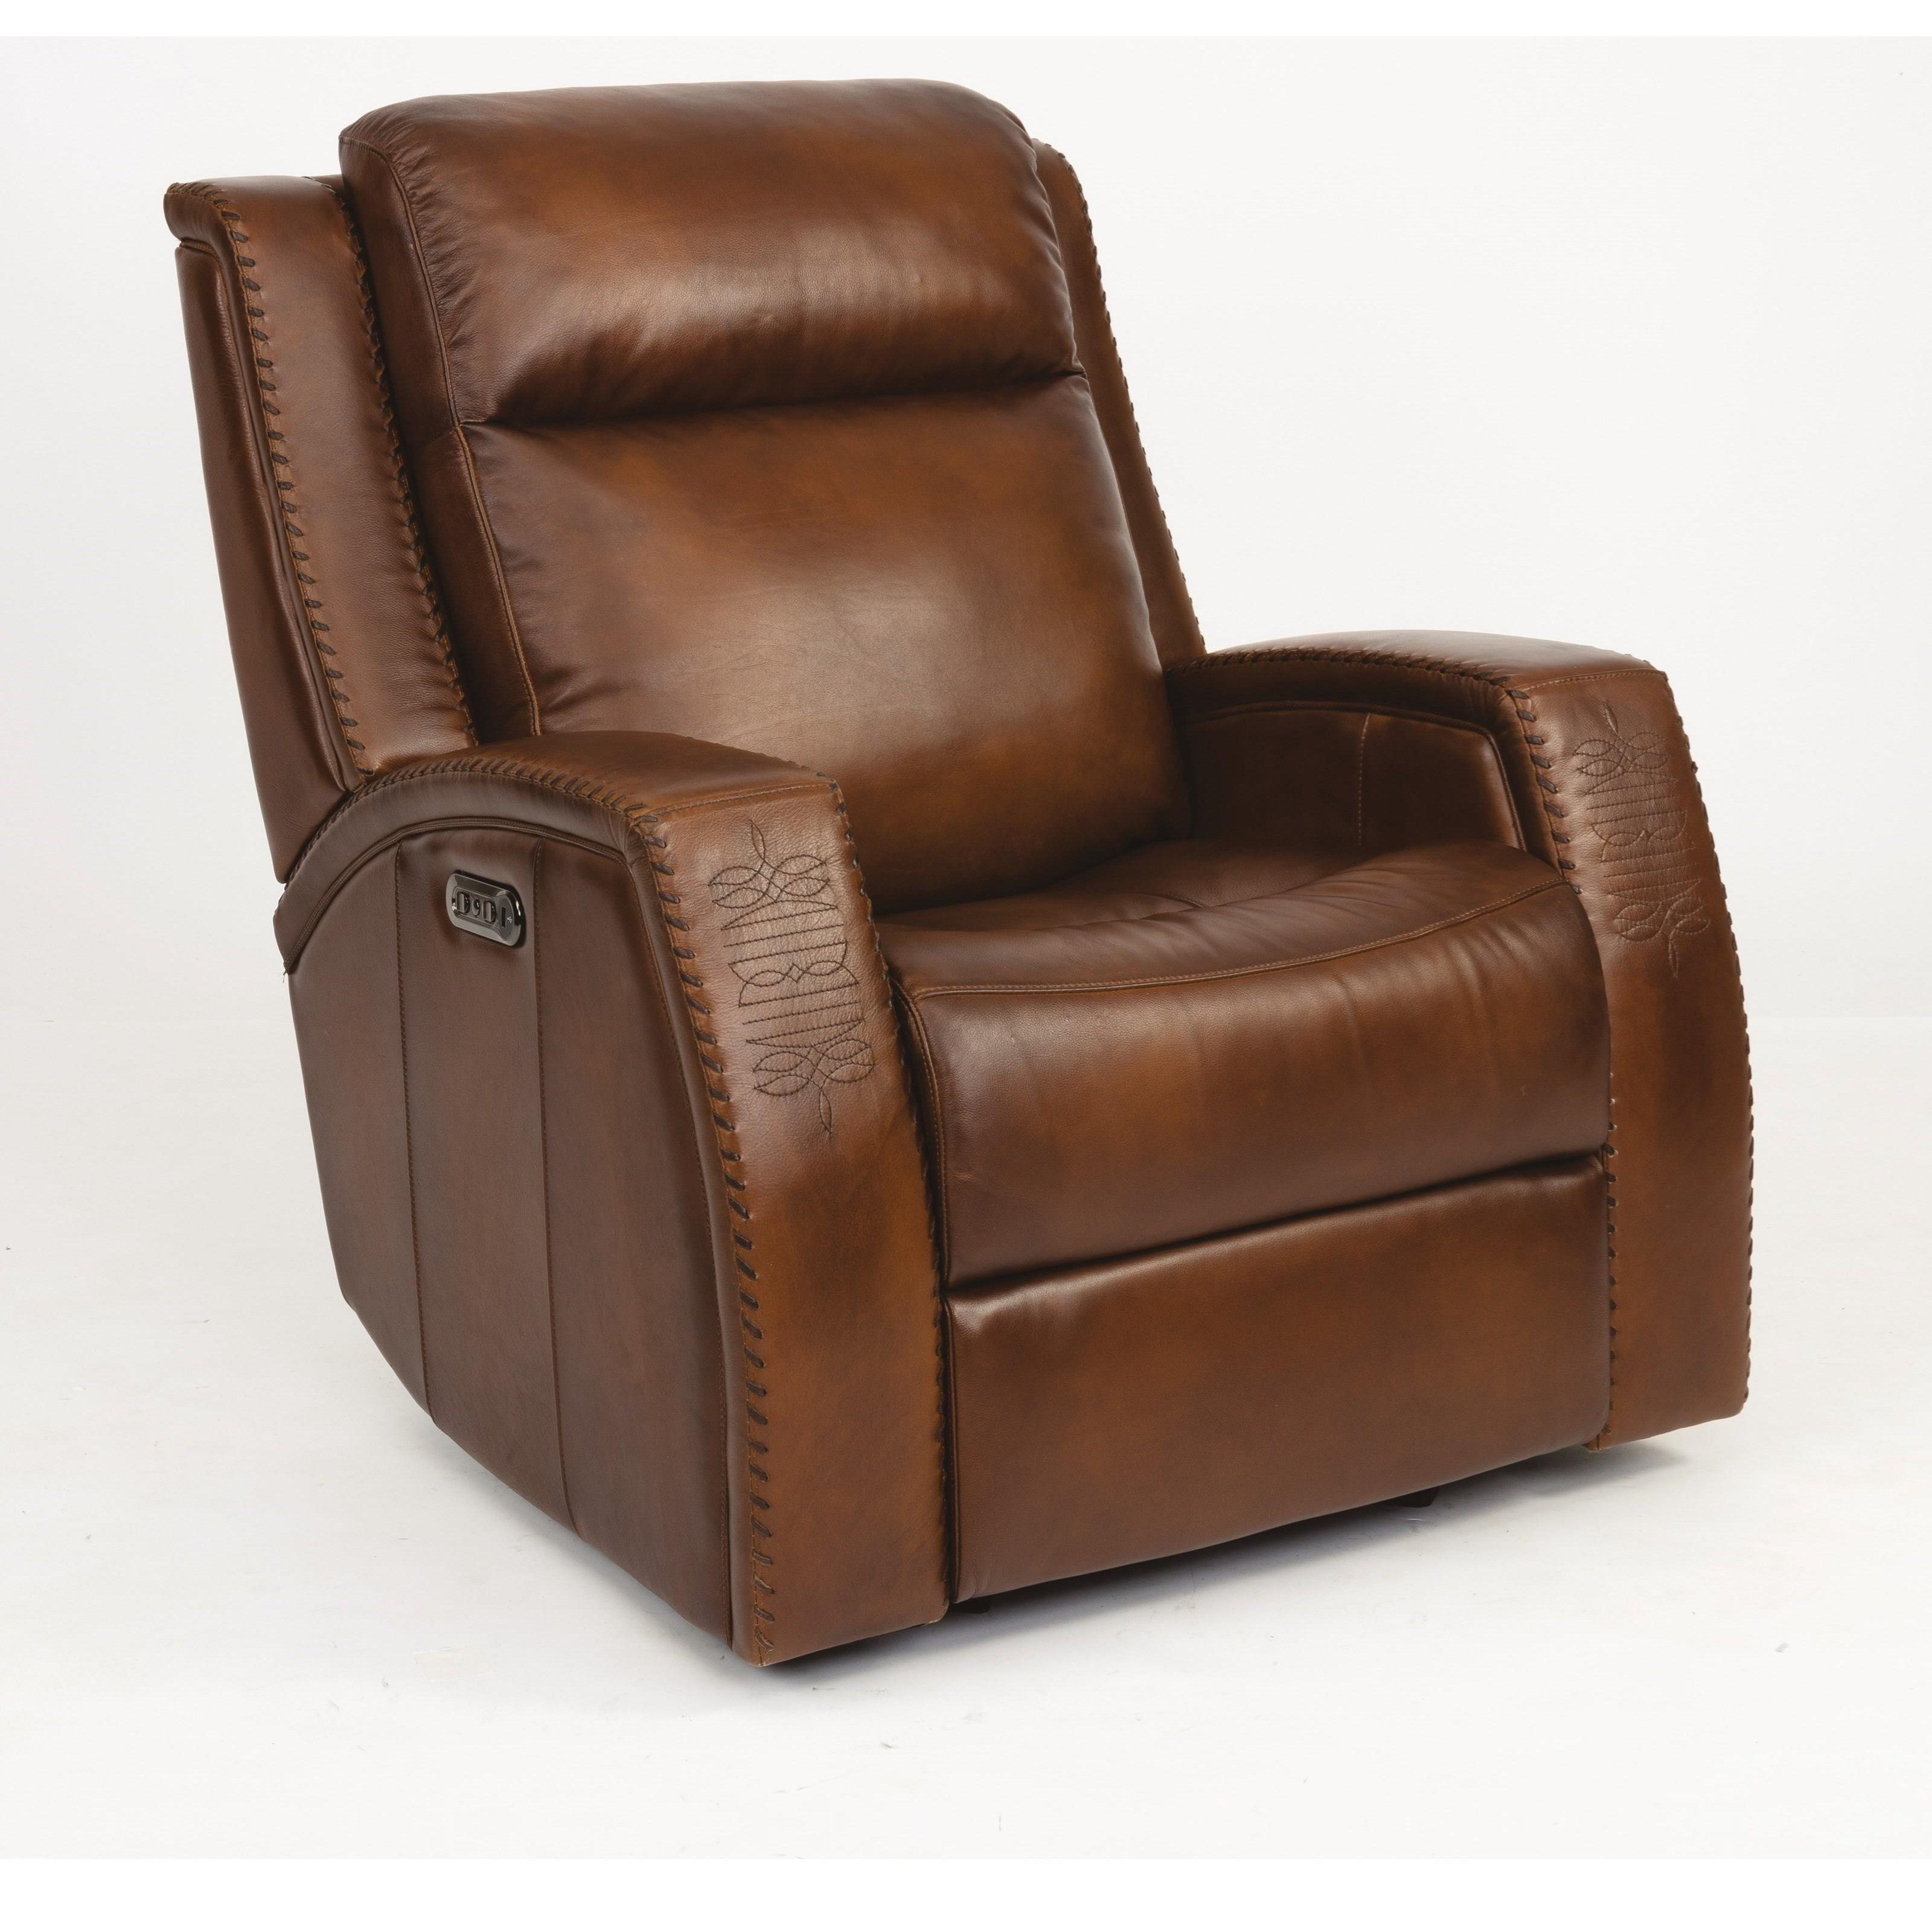 Latitudes - Mustang Power Gliding Recliner w/ Pwr Headrest by Flexsteel at Pilgrim Furniture City